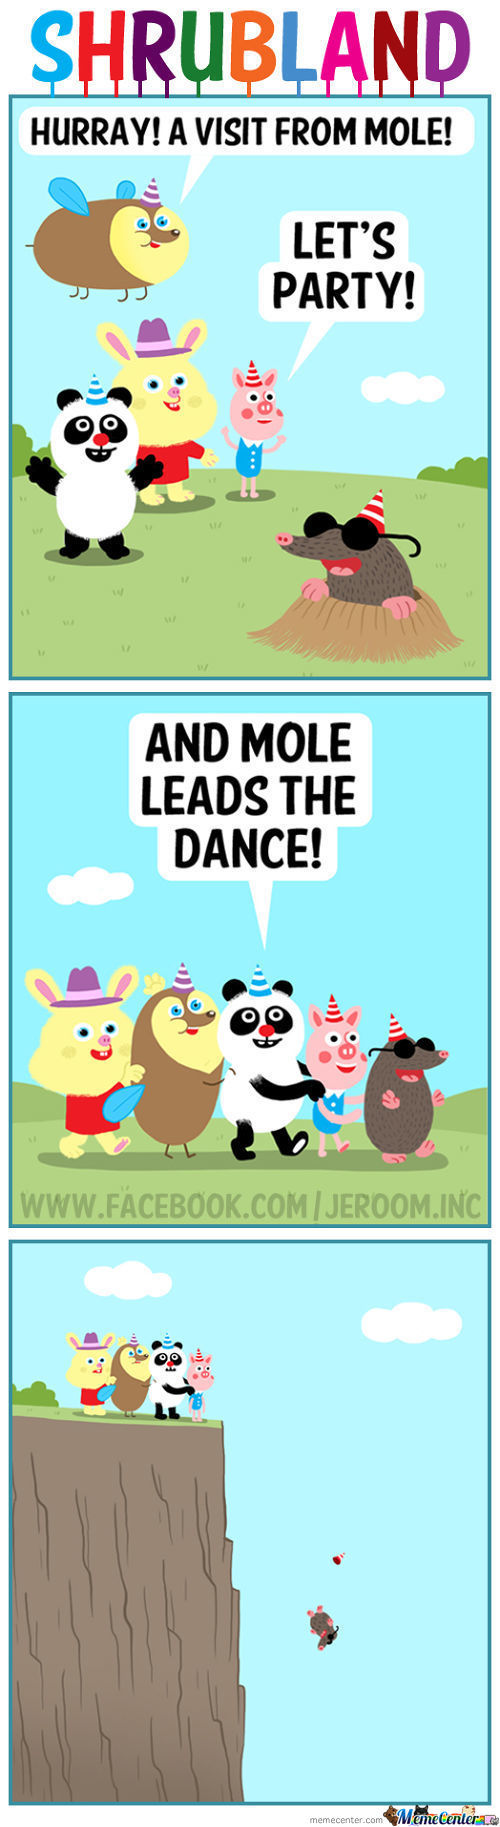 Hurray! A Visit From Mole!